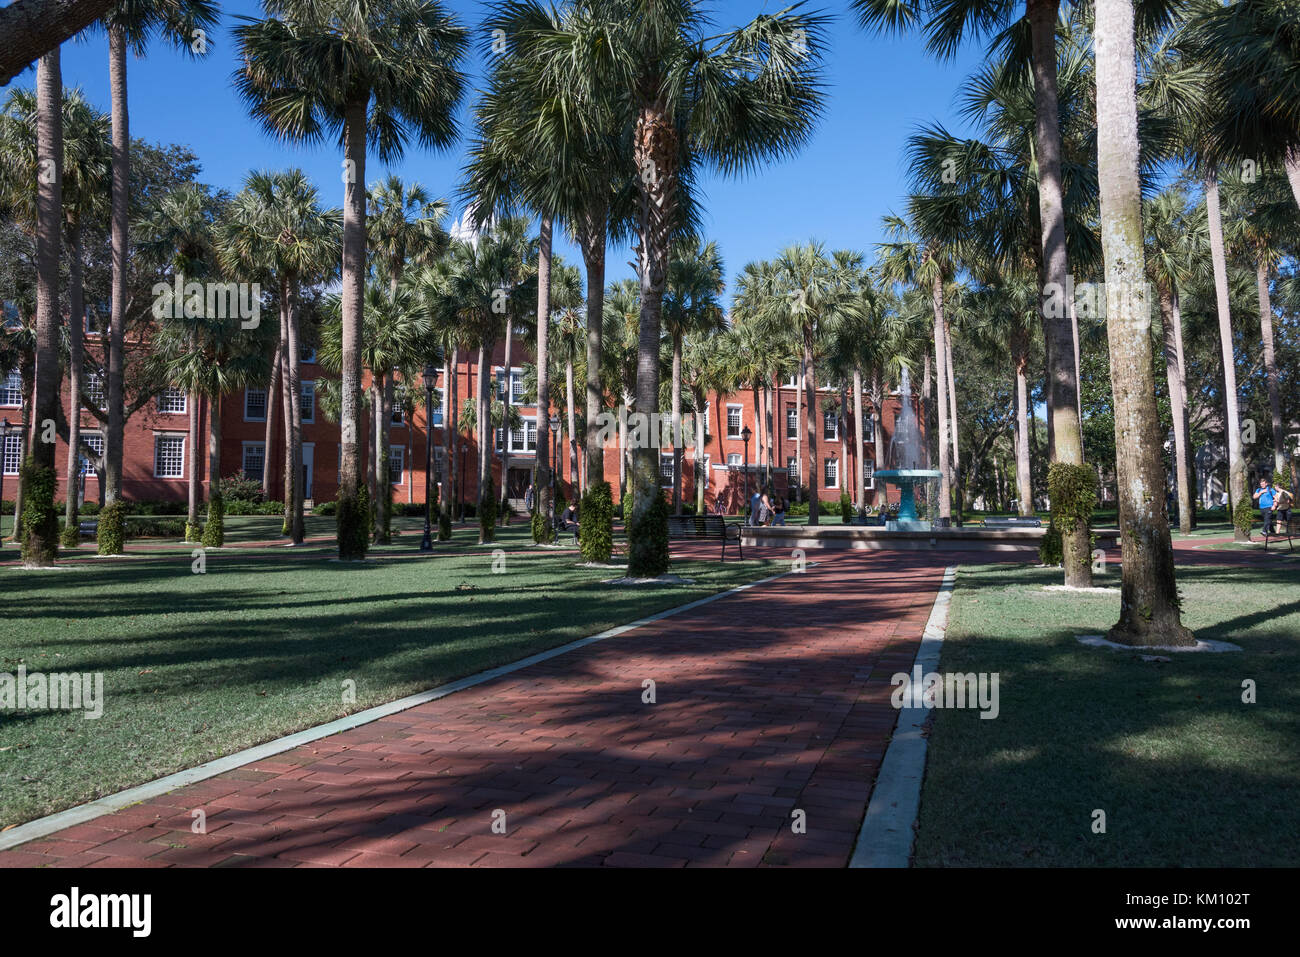 Stetson University College of Arts and Sciences, de l'autre, Boulevard DeLand, FL, United States Banque D'Images